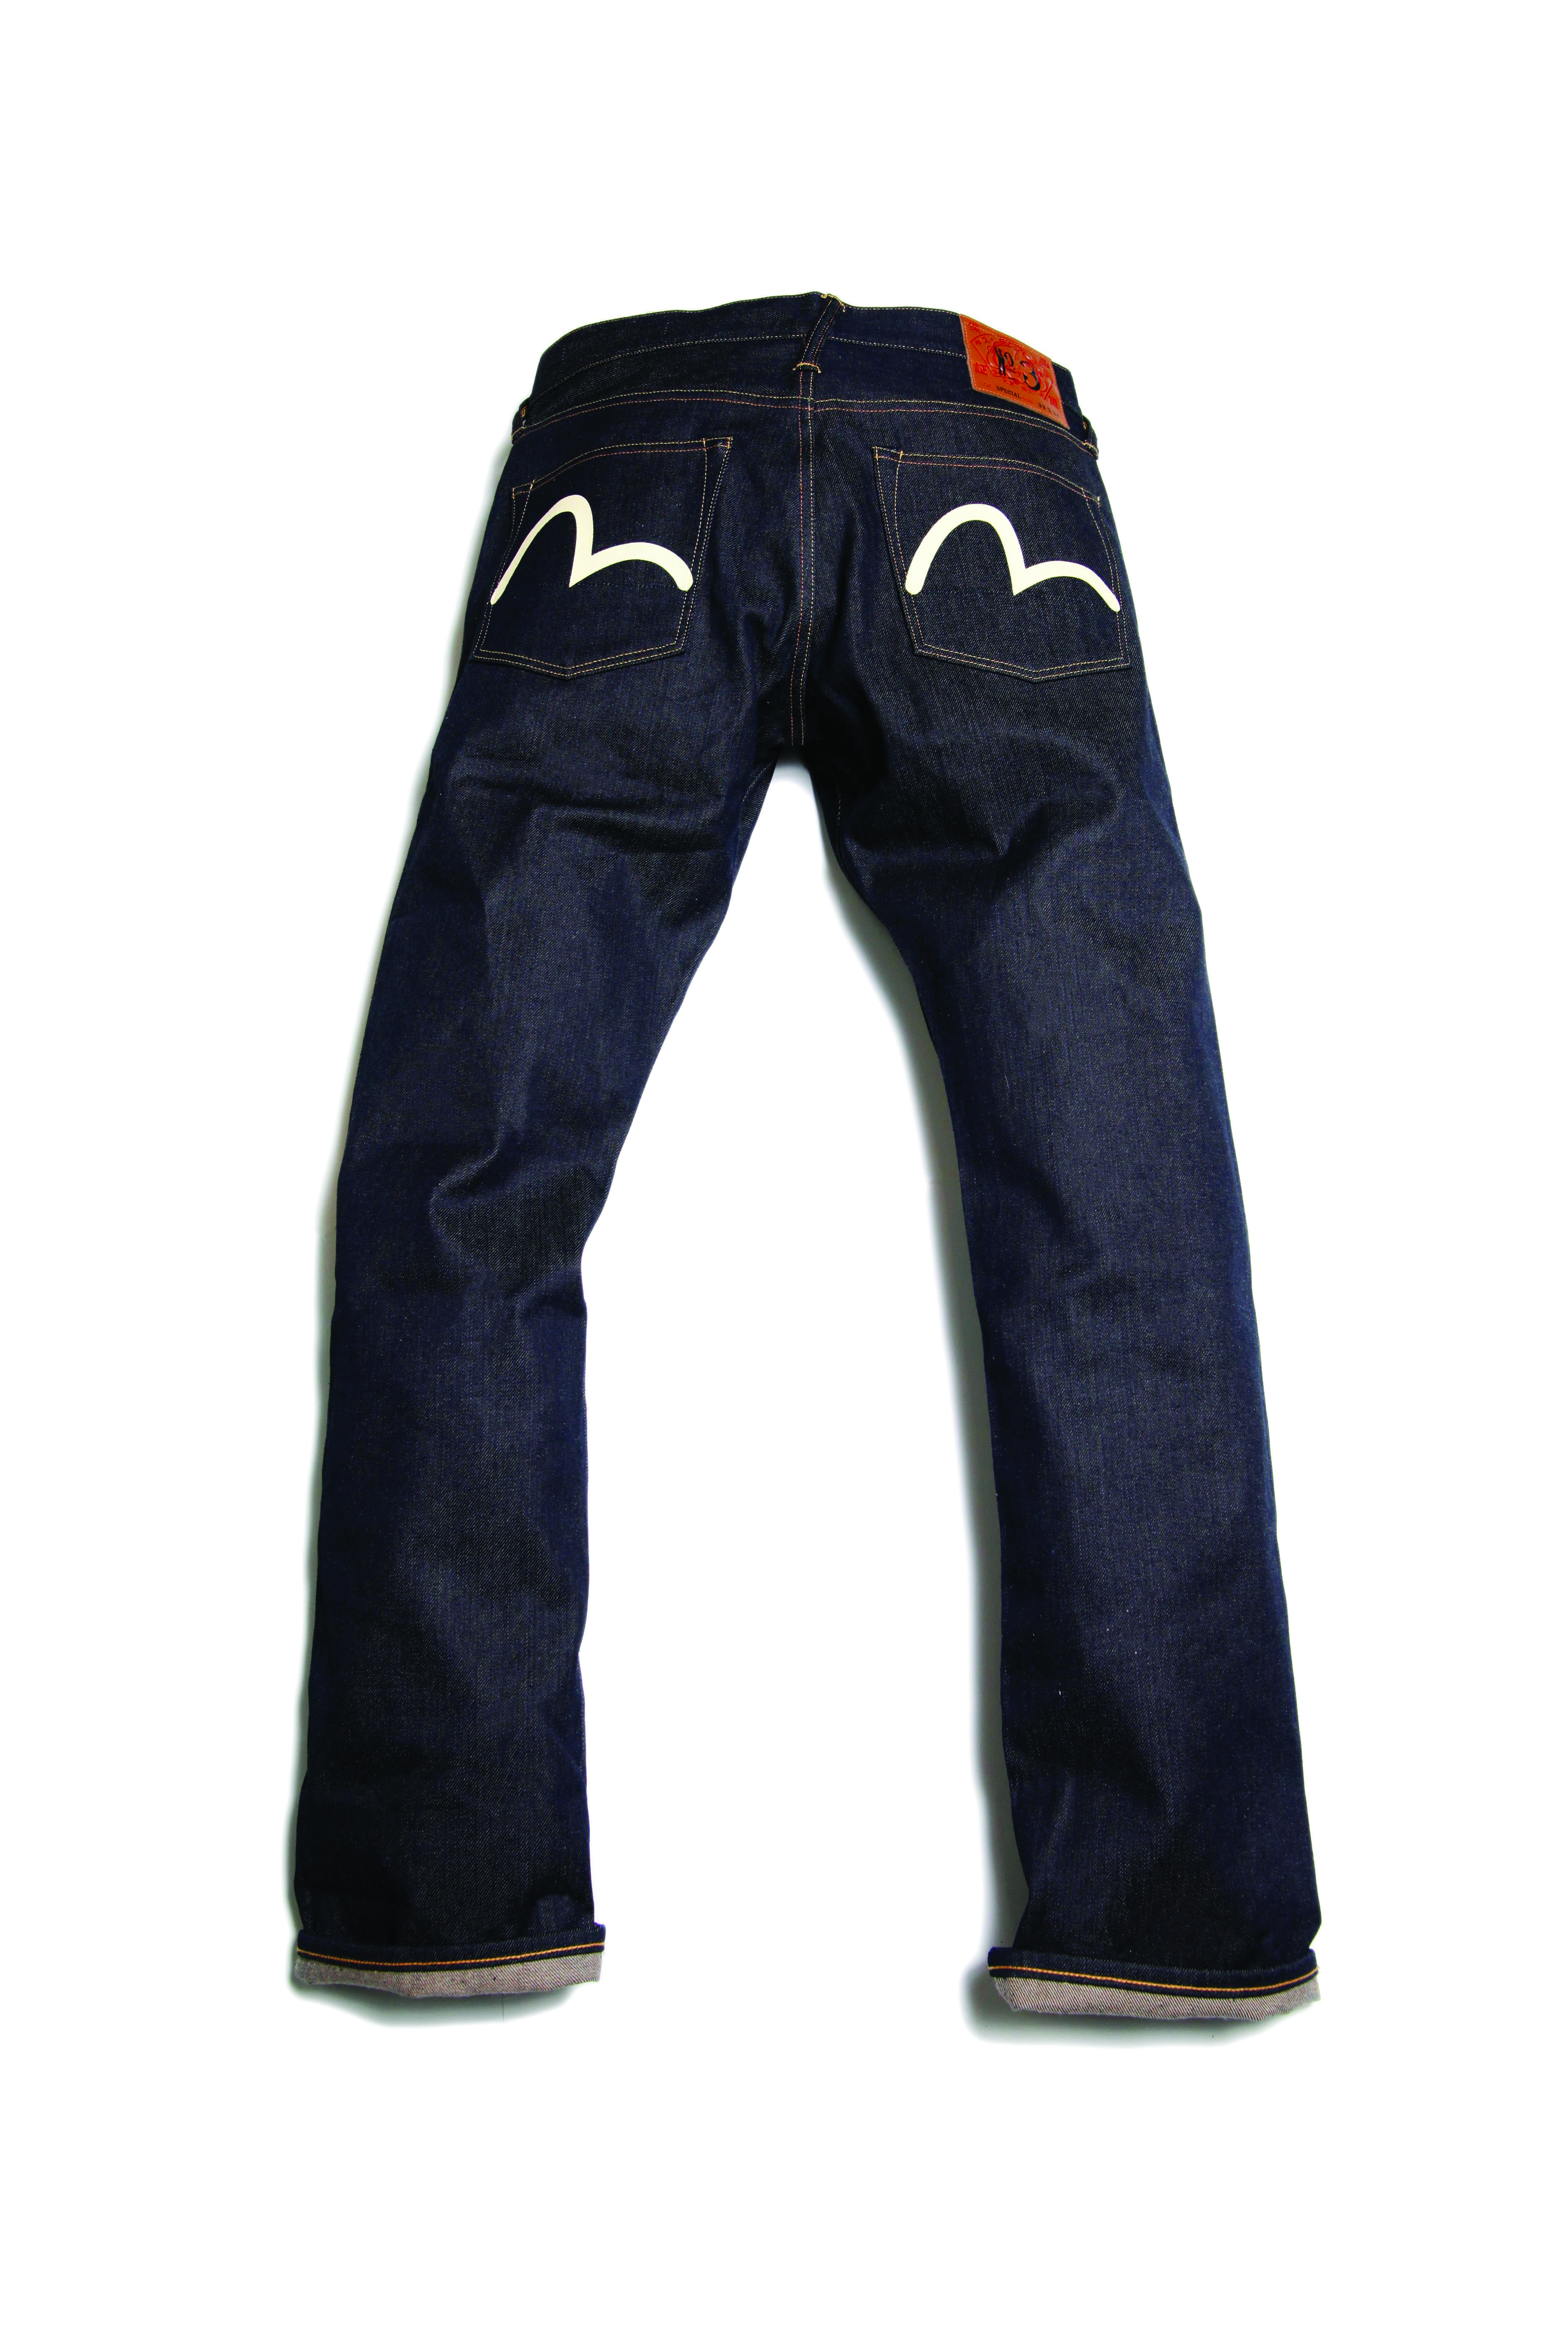 d2bc4556 Do you know all our selvedge jeans are made under EVISU Rules? Rule 1 -